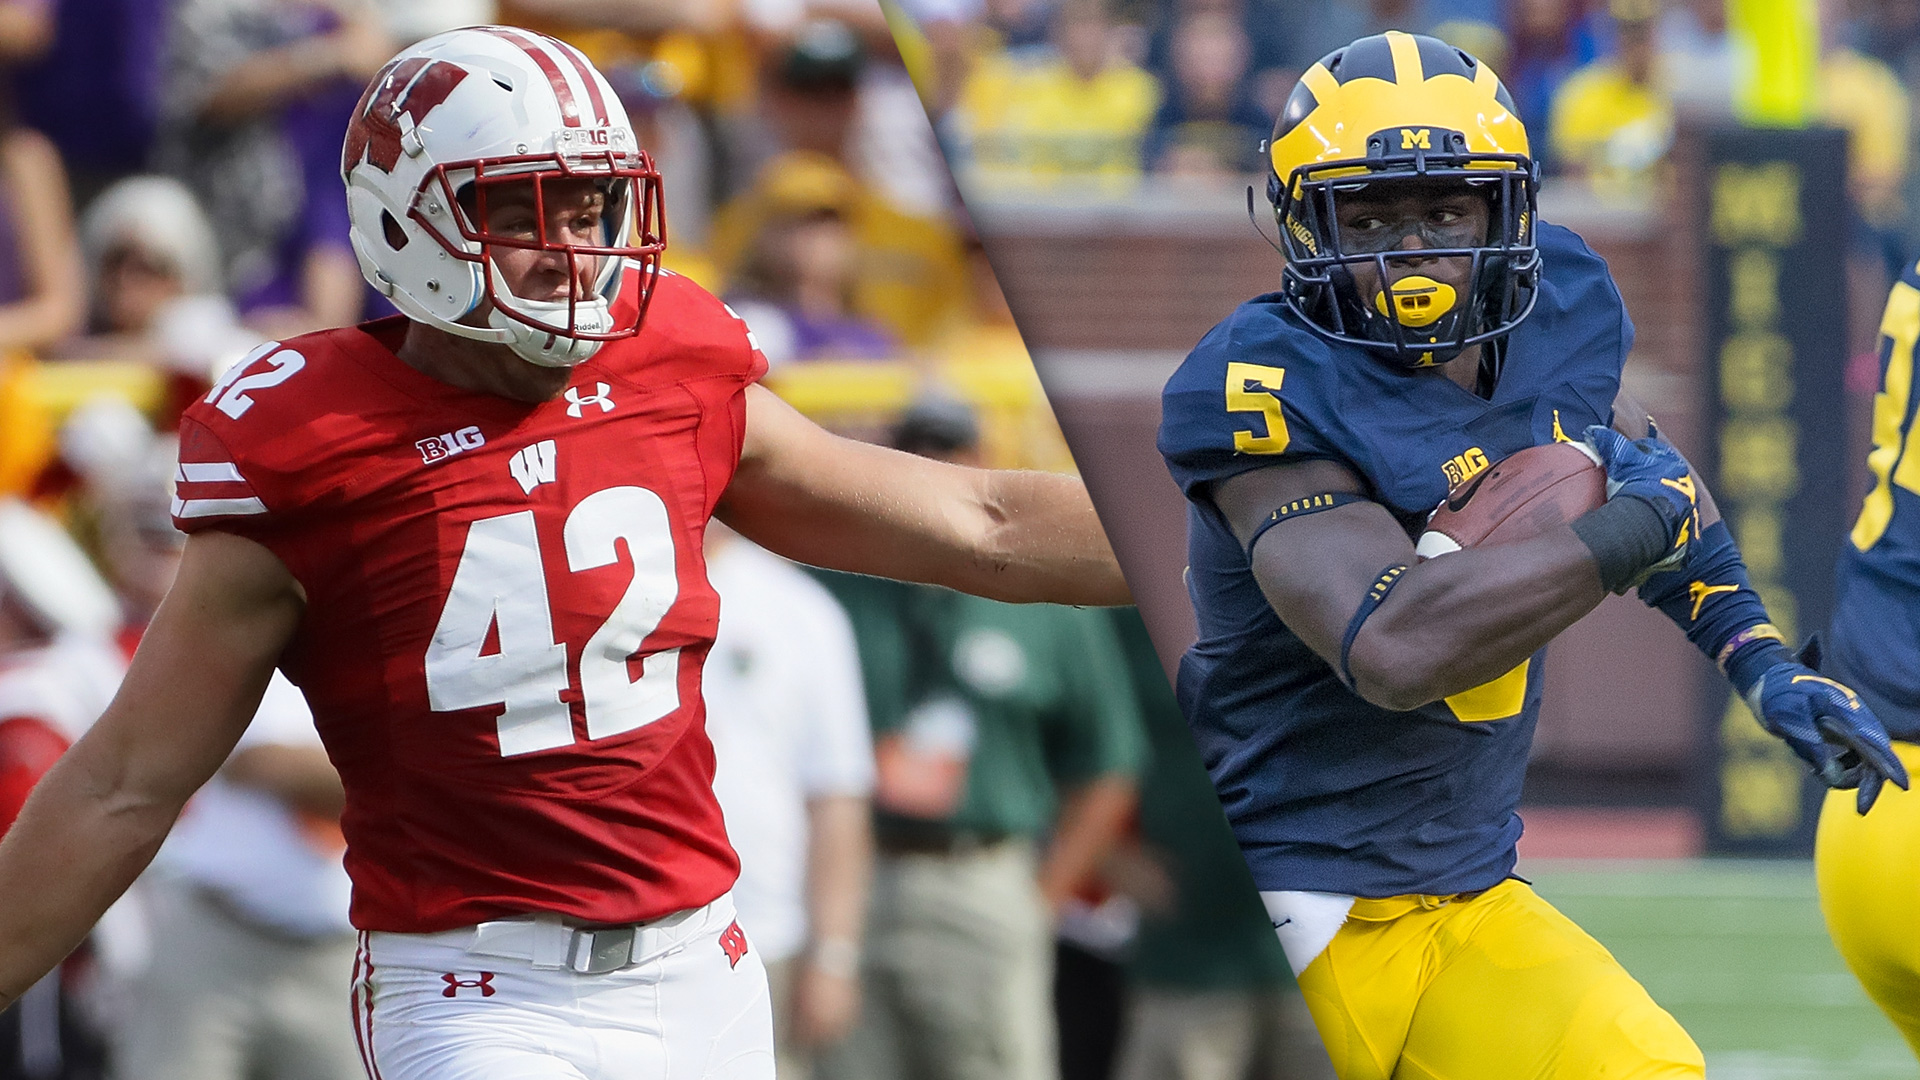 Overheard from players, coaches after Michigan's win over Wisconsin